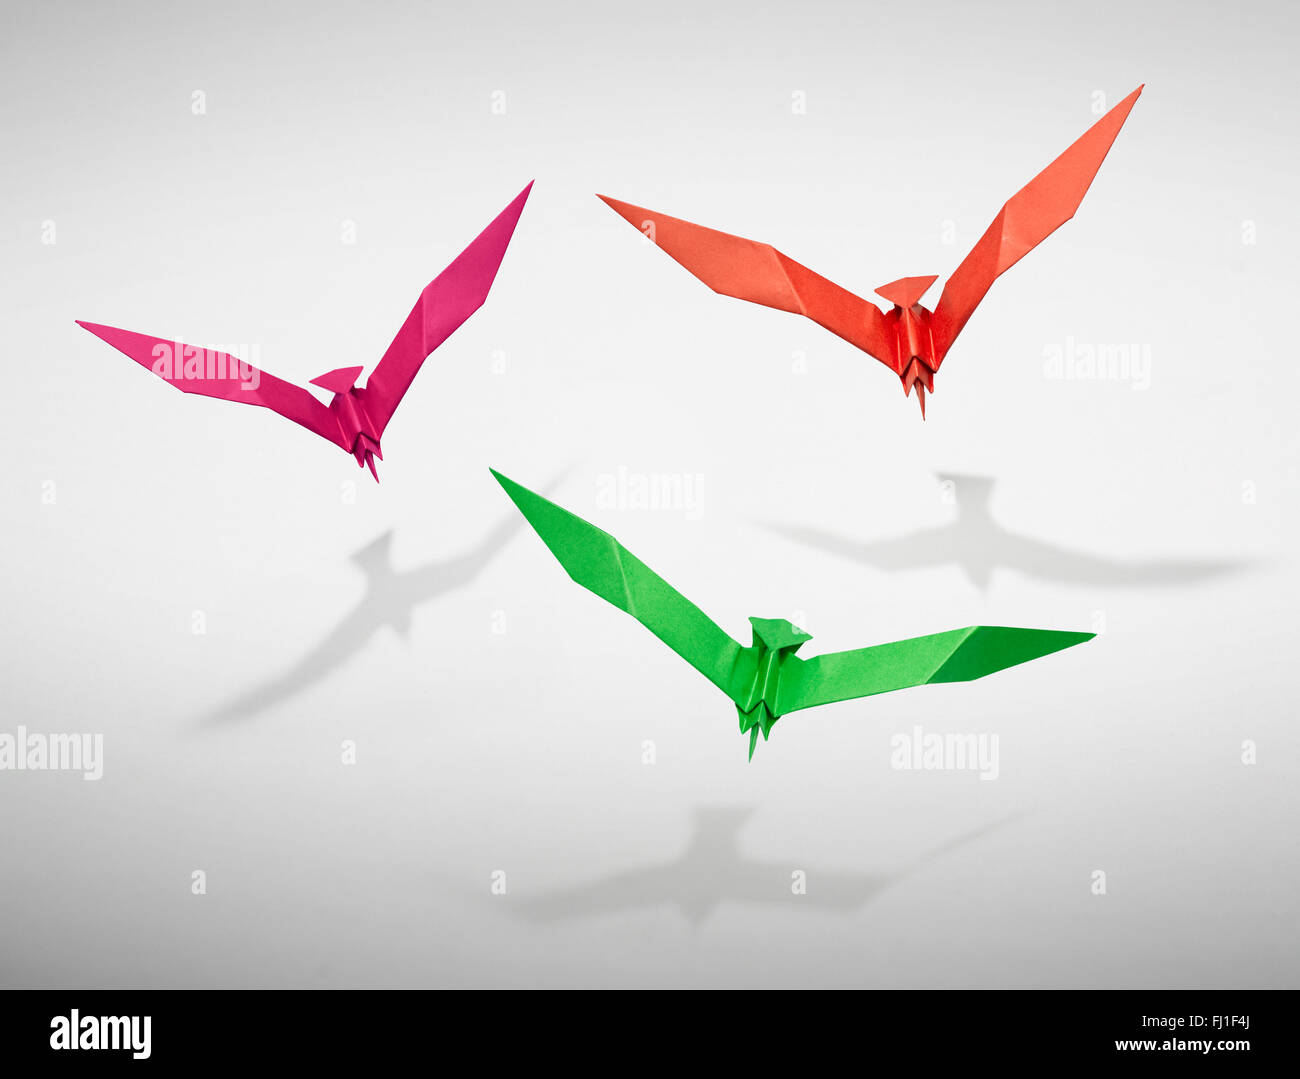 Group of three flying birds in Origami, there is a path for each bird. - Stock Image